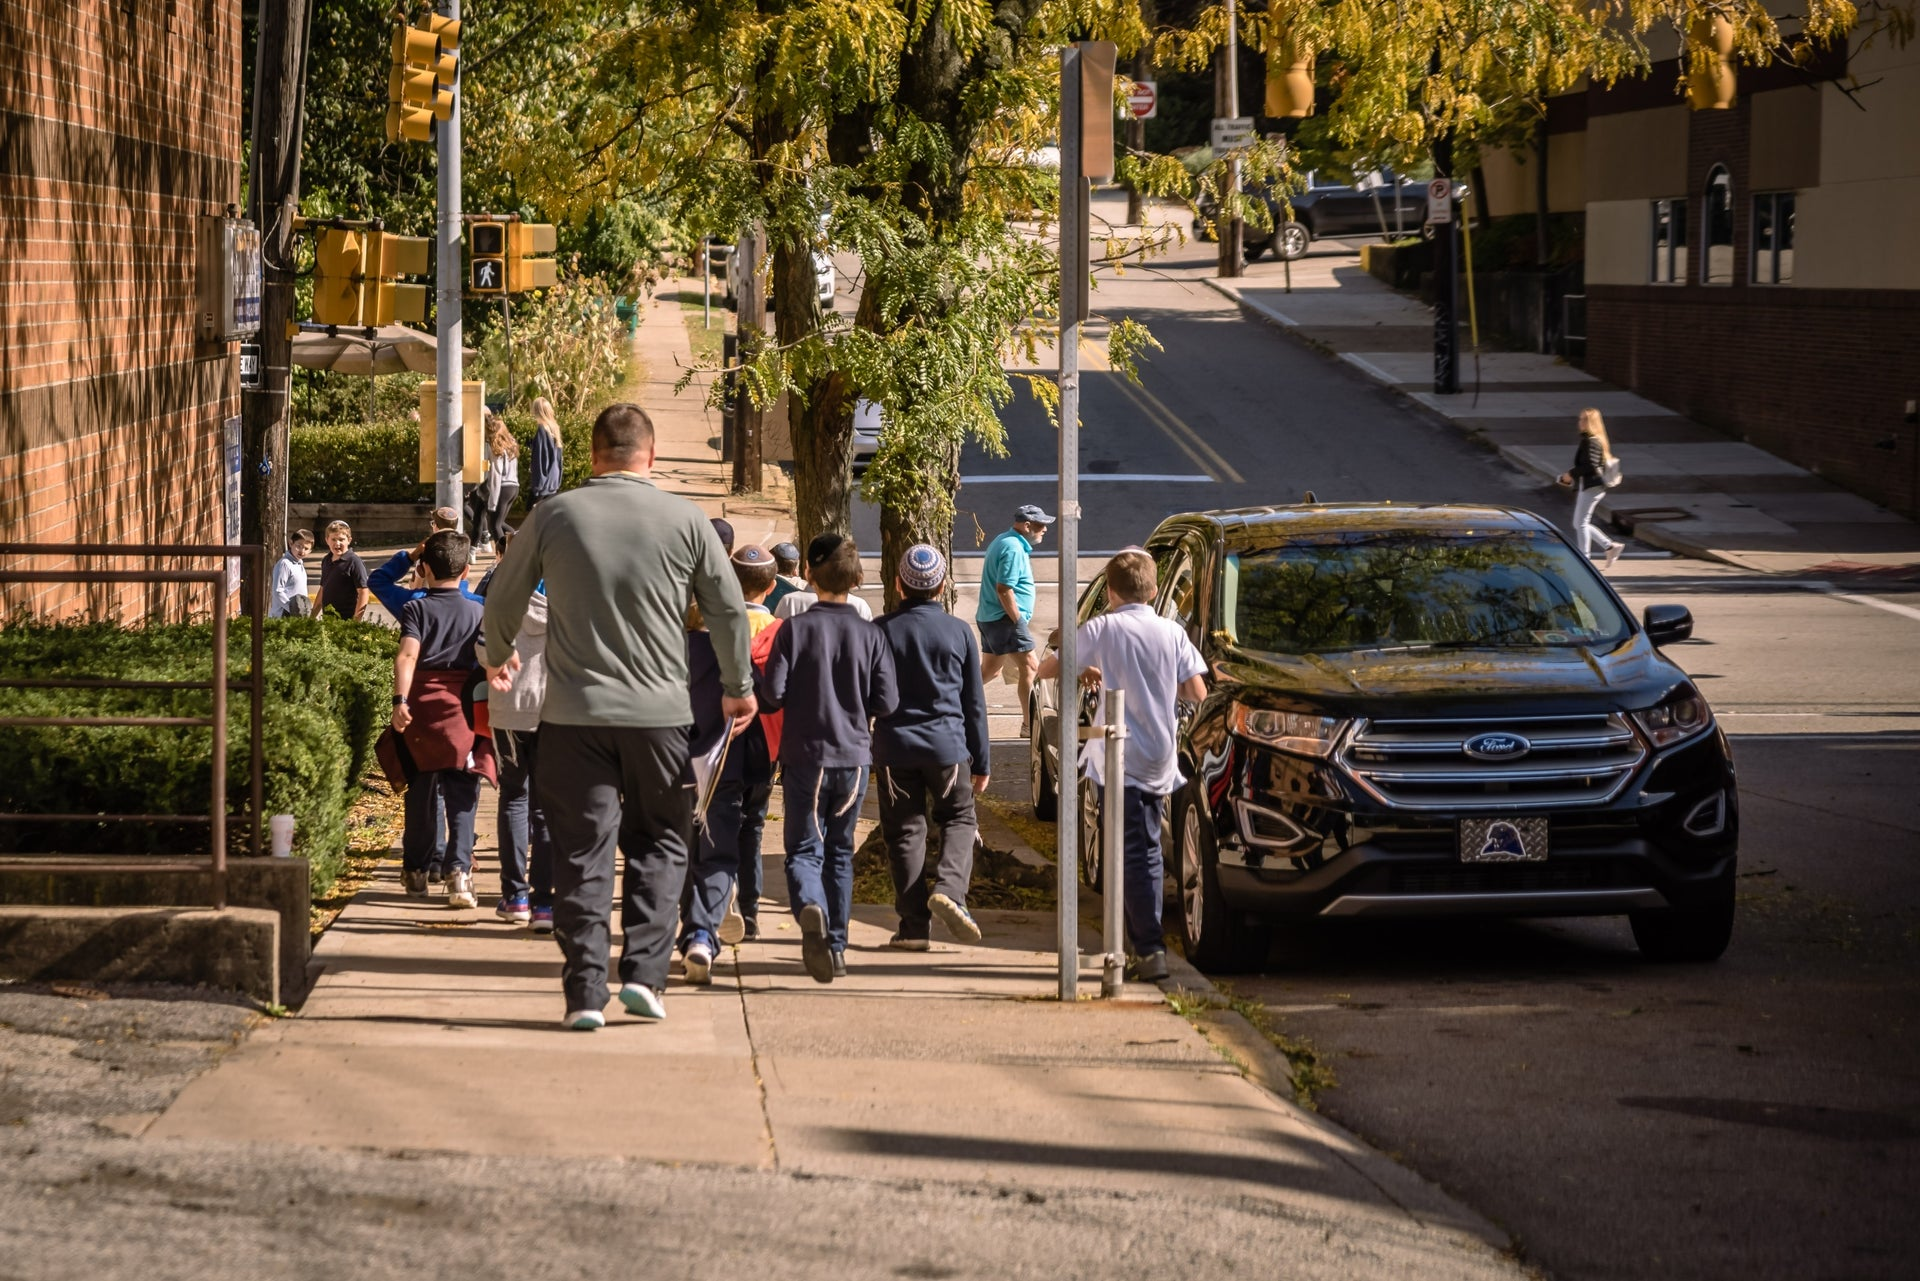 Children in the neighborhood of Squirrel Hill, Pittsburgh, October 23, 2019